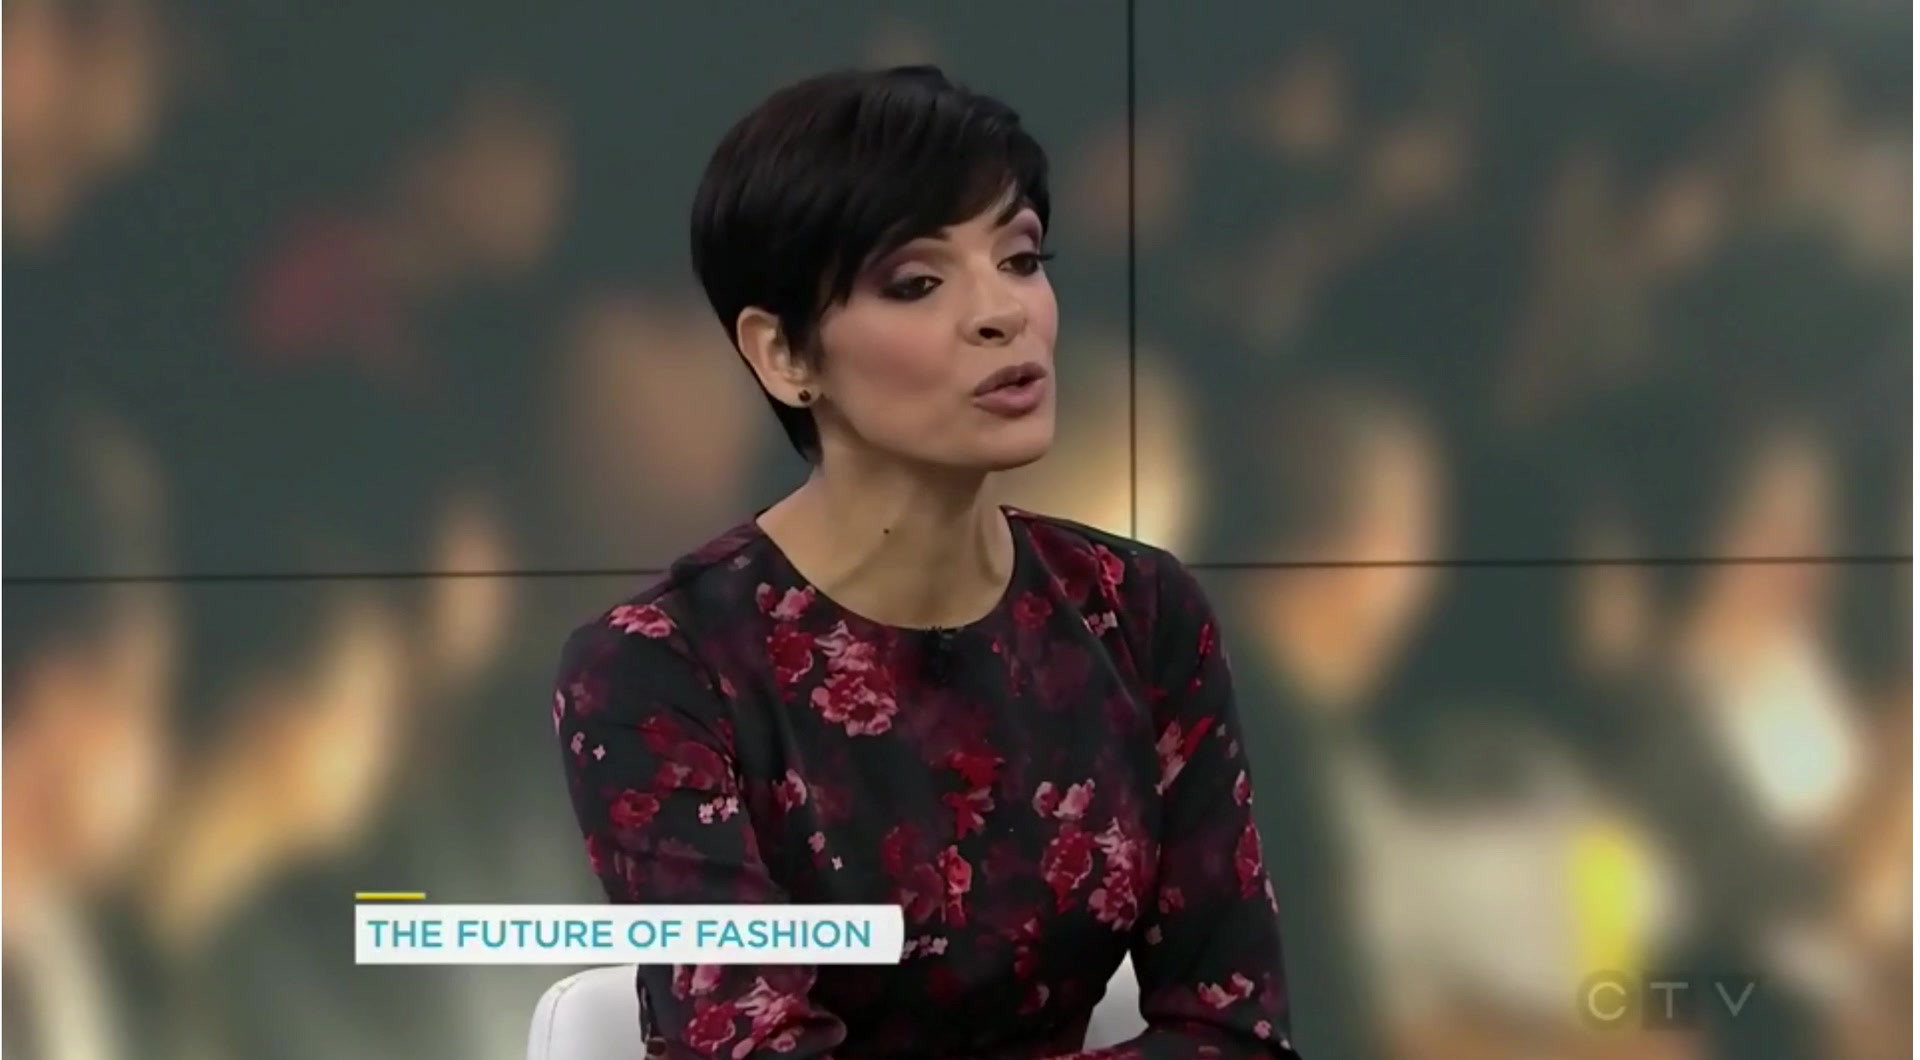 CTV  - Is the fashion industry any more diverse than it was decades ago?